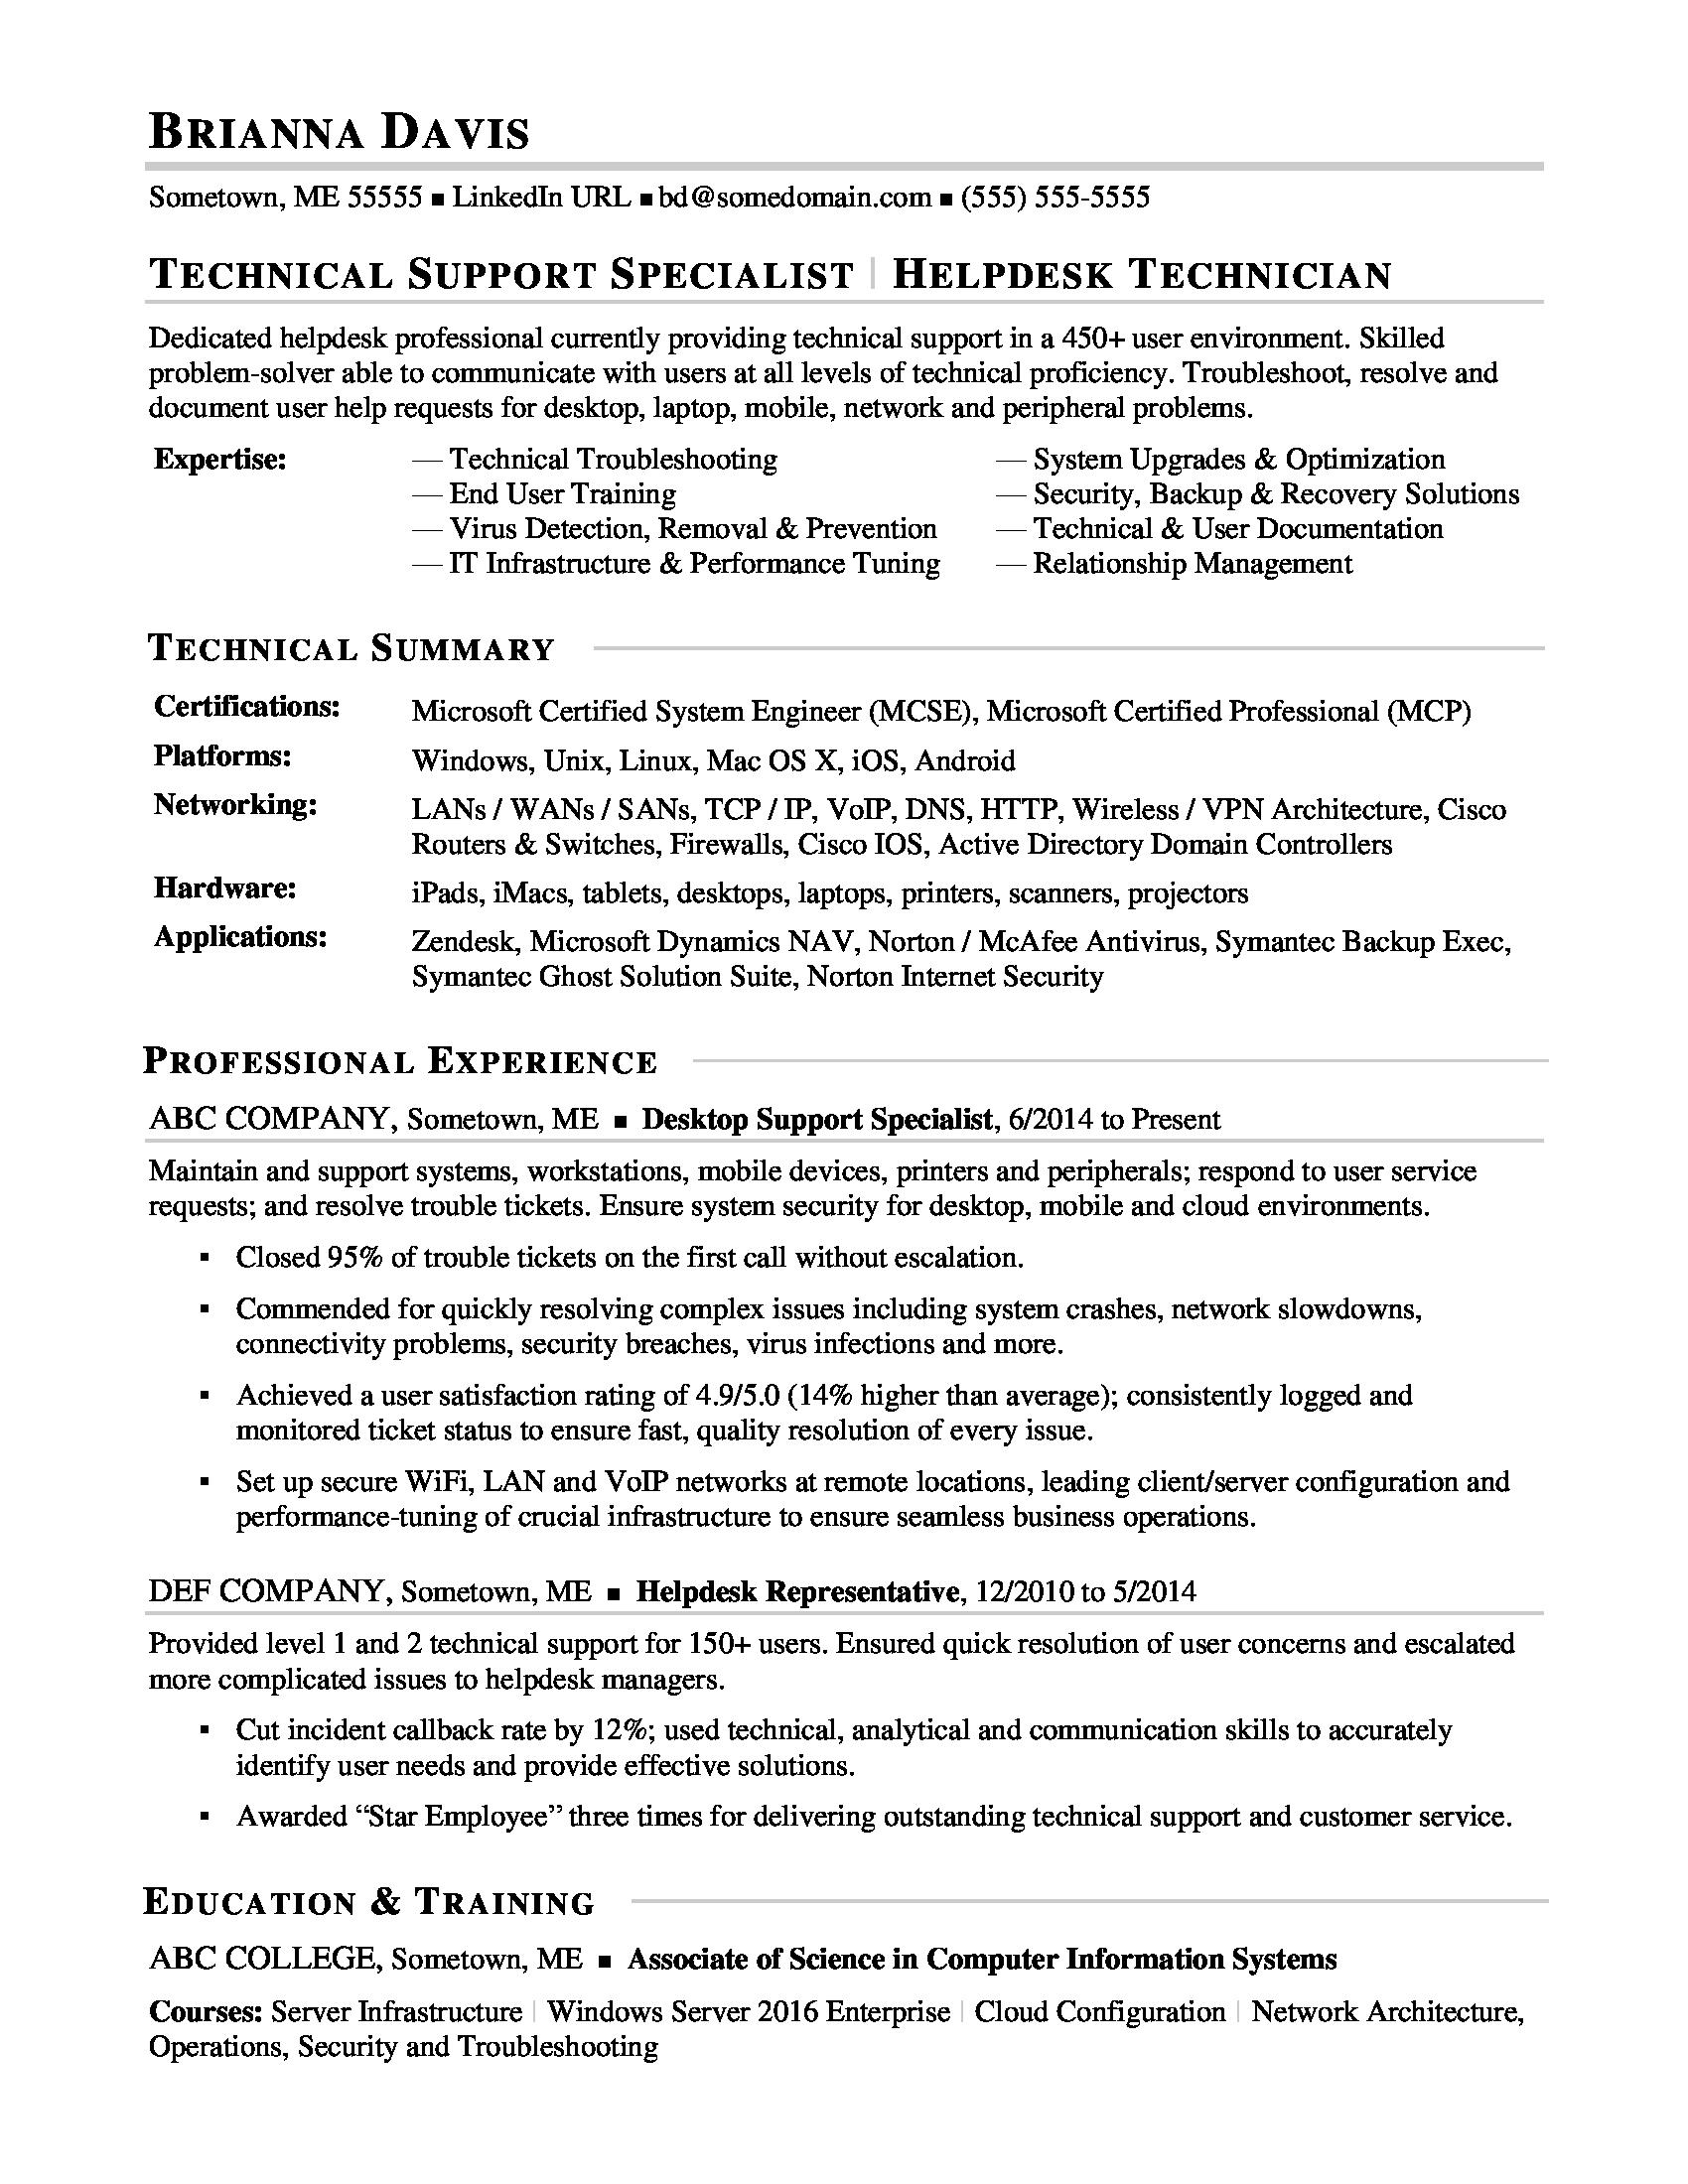 Sample Resume For Experienced IT Help Desk Employee  Help With Resume Wording